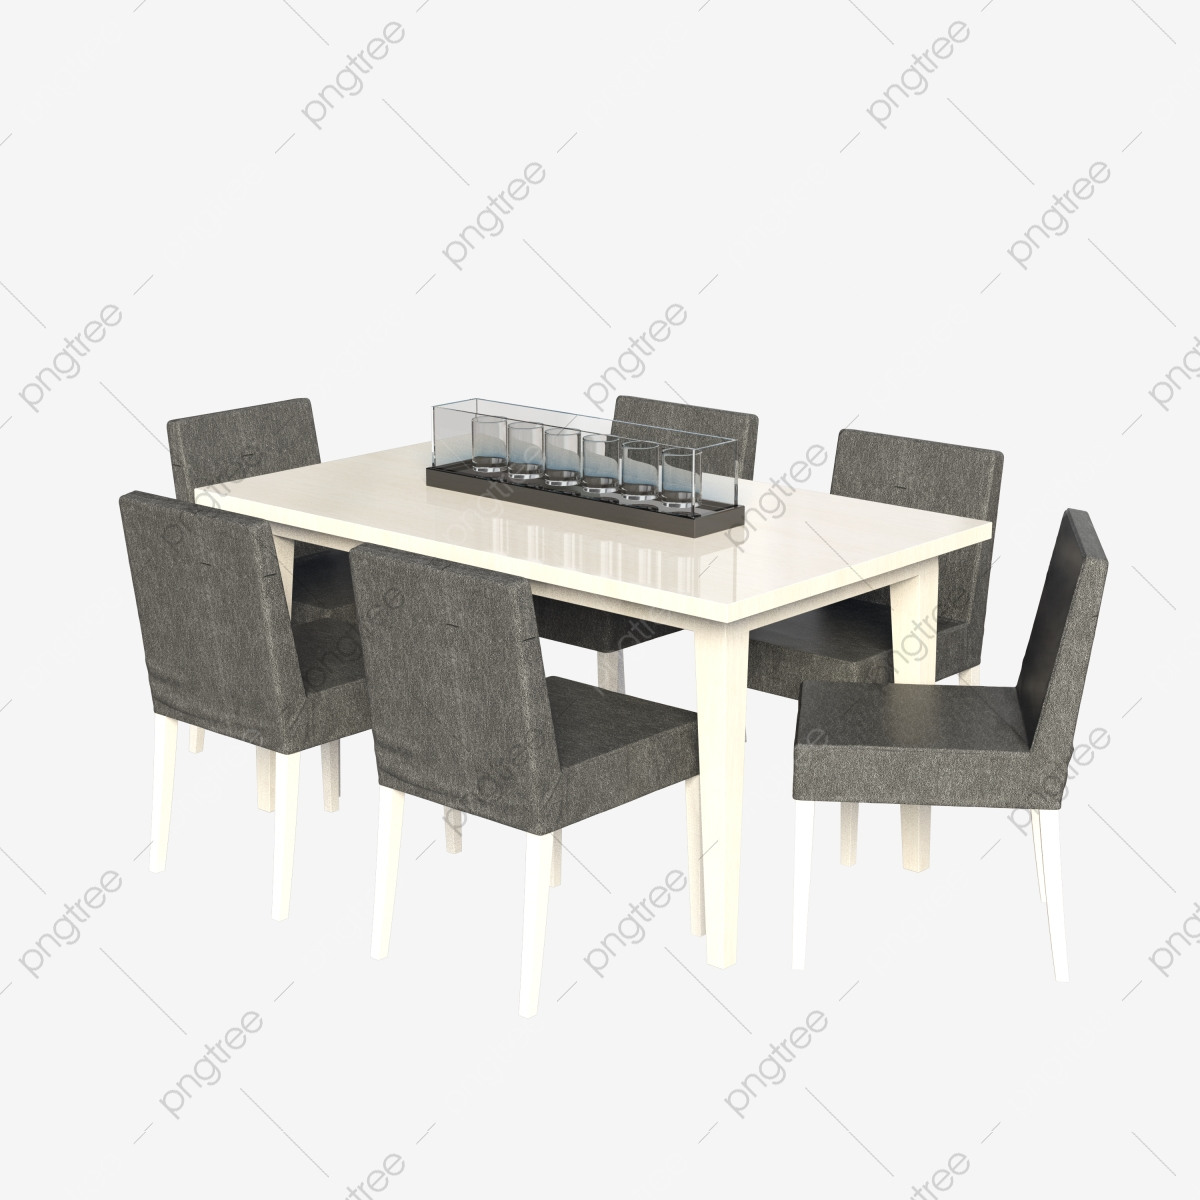 Modern Minimalist Table And Chair Set Marble Table Dining Chair Furniture Png Transparent Clipart Image And Psd File For Free Download